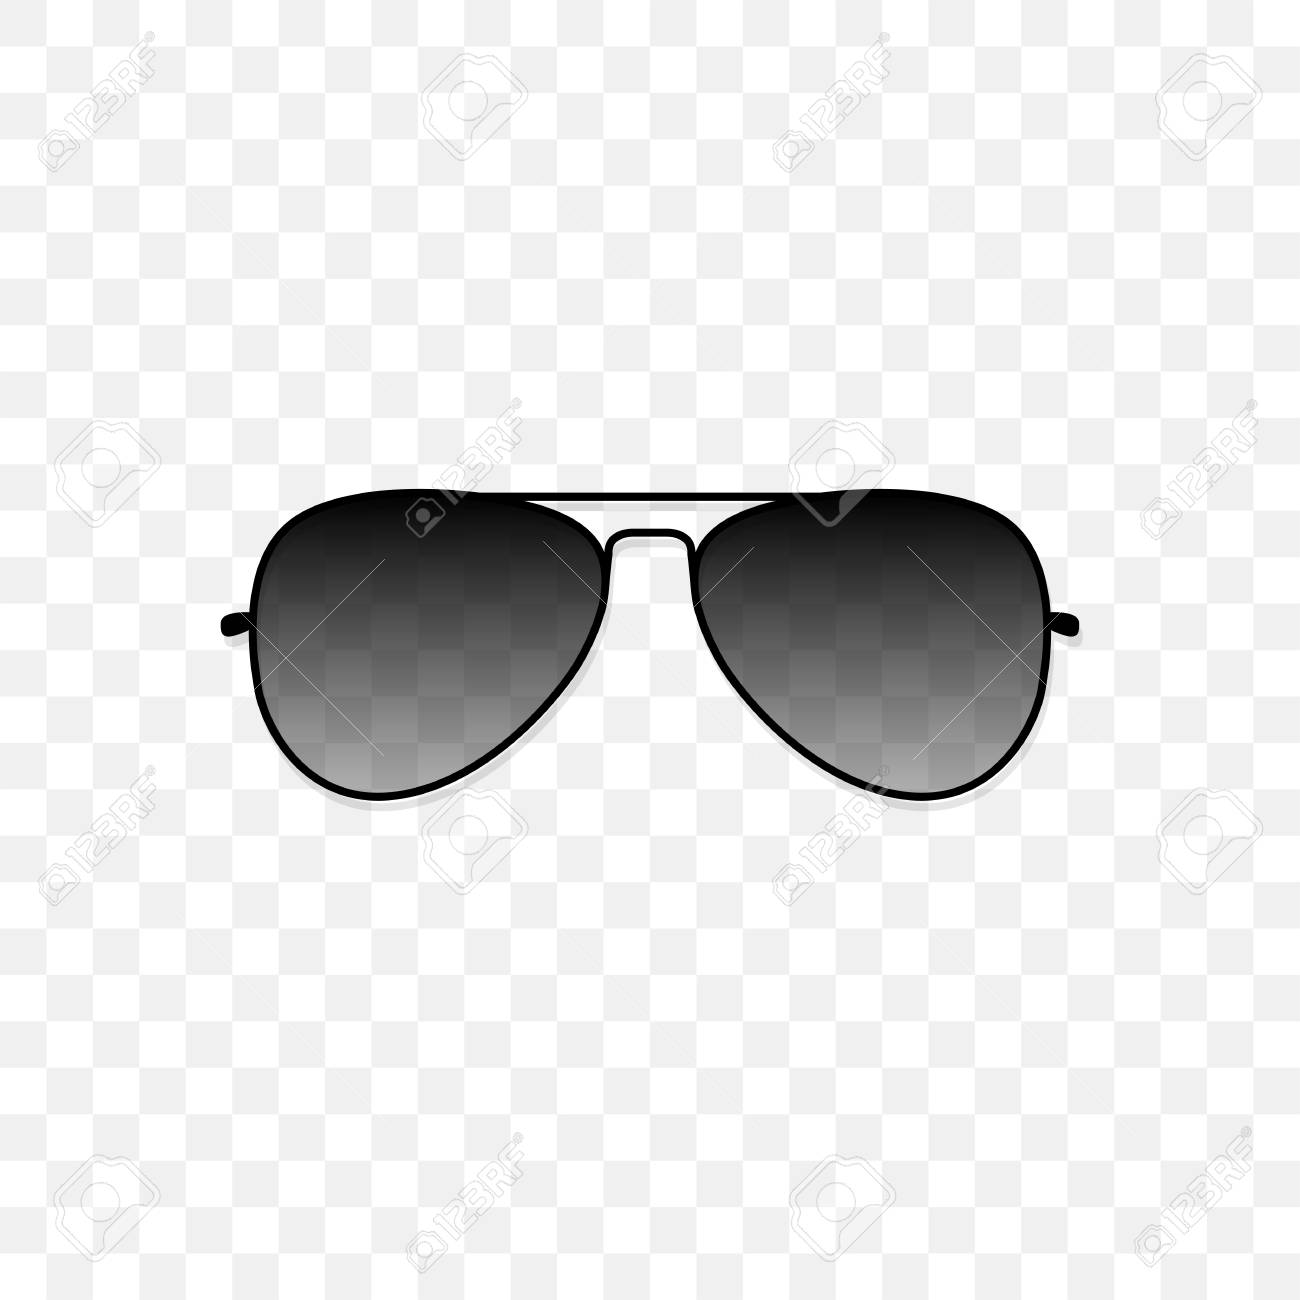 831318d146 Fashion accessory vector illustration. Realistic sunglasses with a  translucent black glass on a transparent background. Protection from sun and